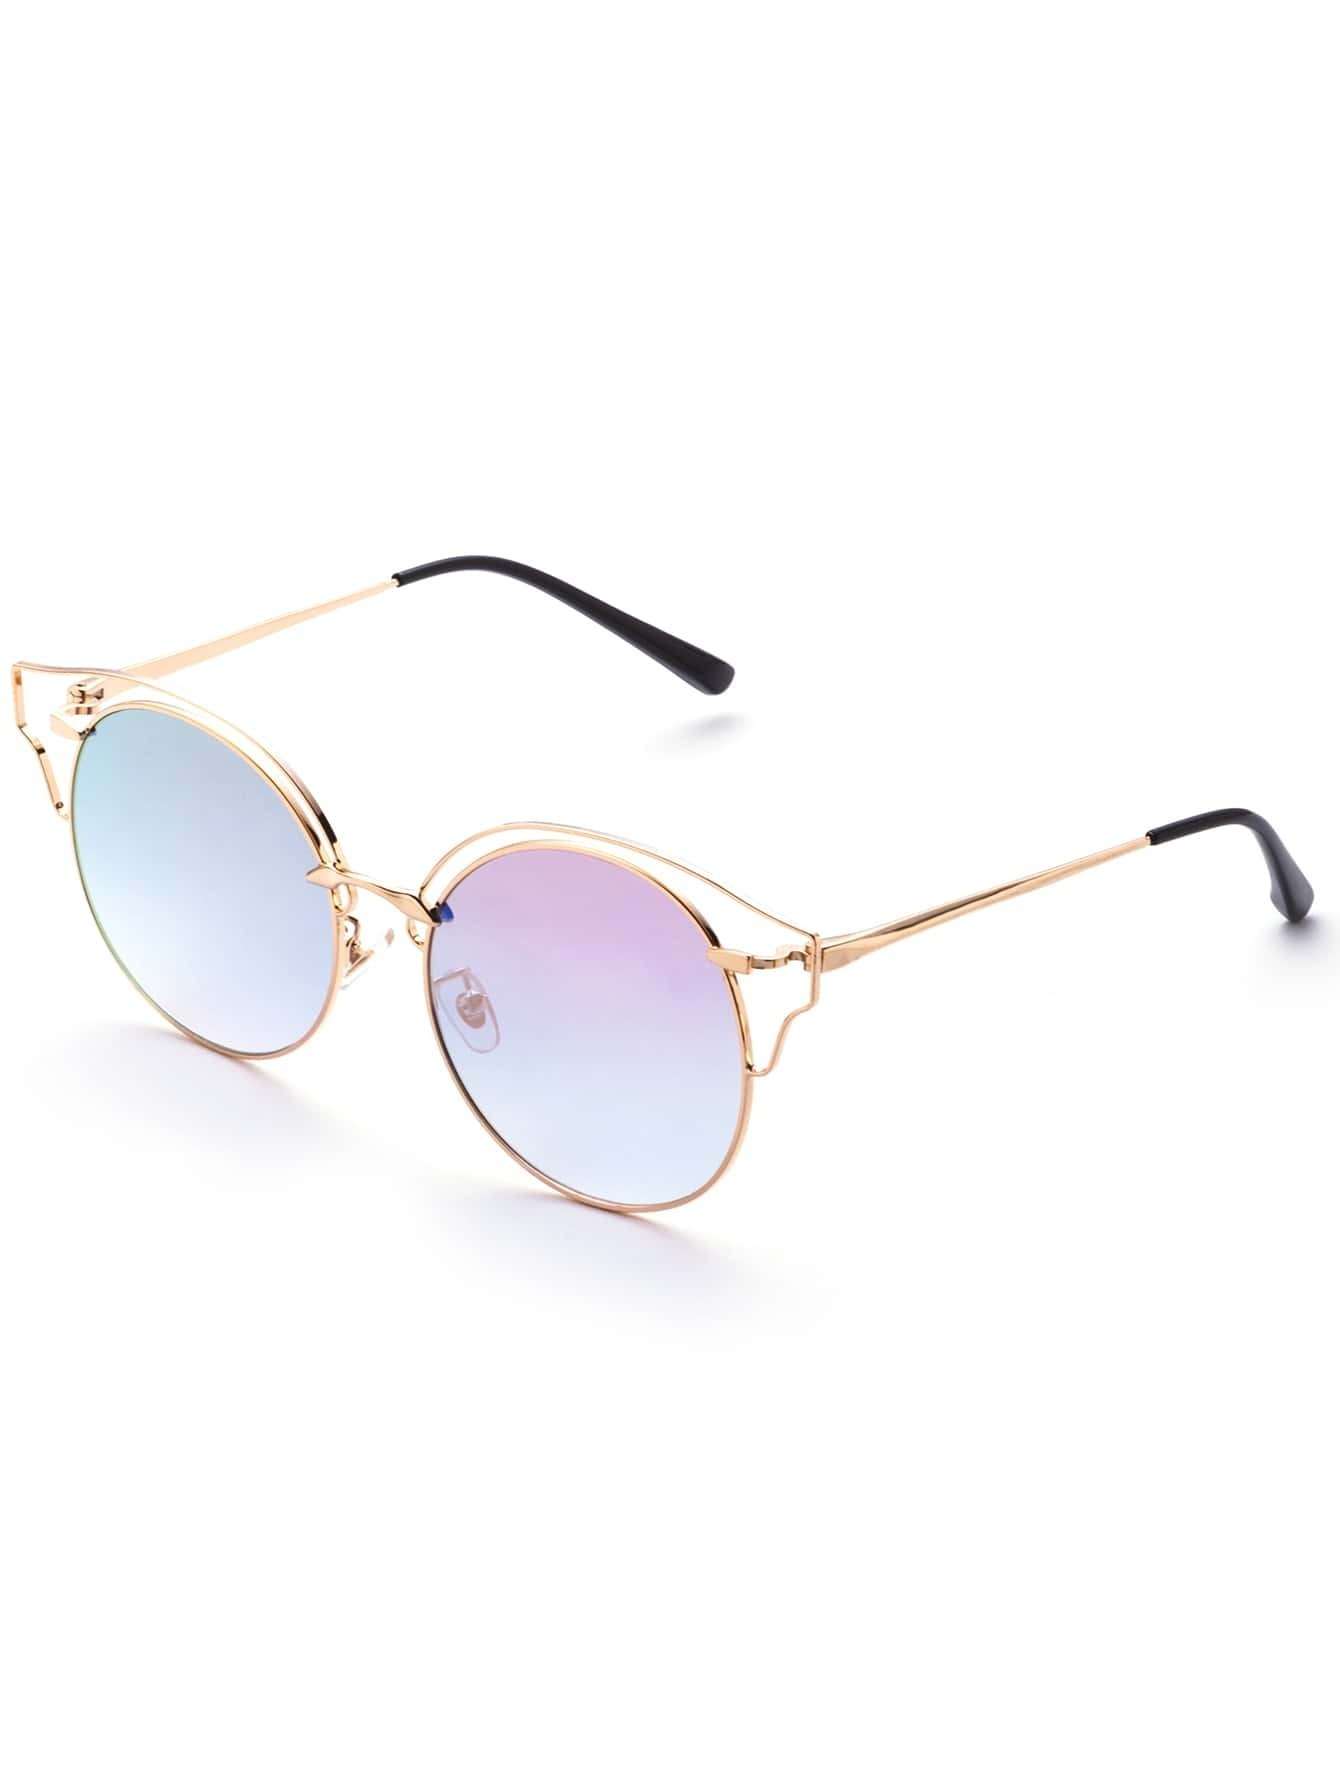 Sunglasses With Gold Frame : Gold Frame Pink Lens Cat Eye Sunglasses